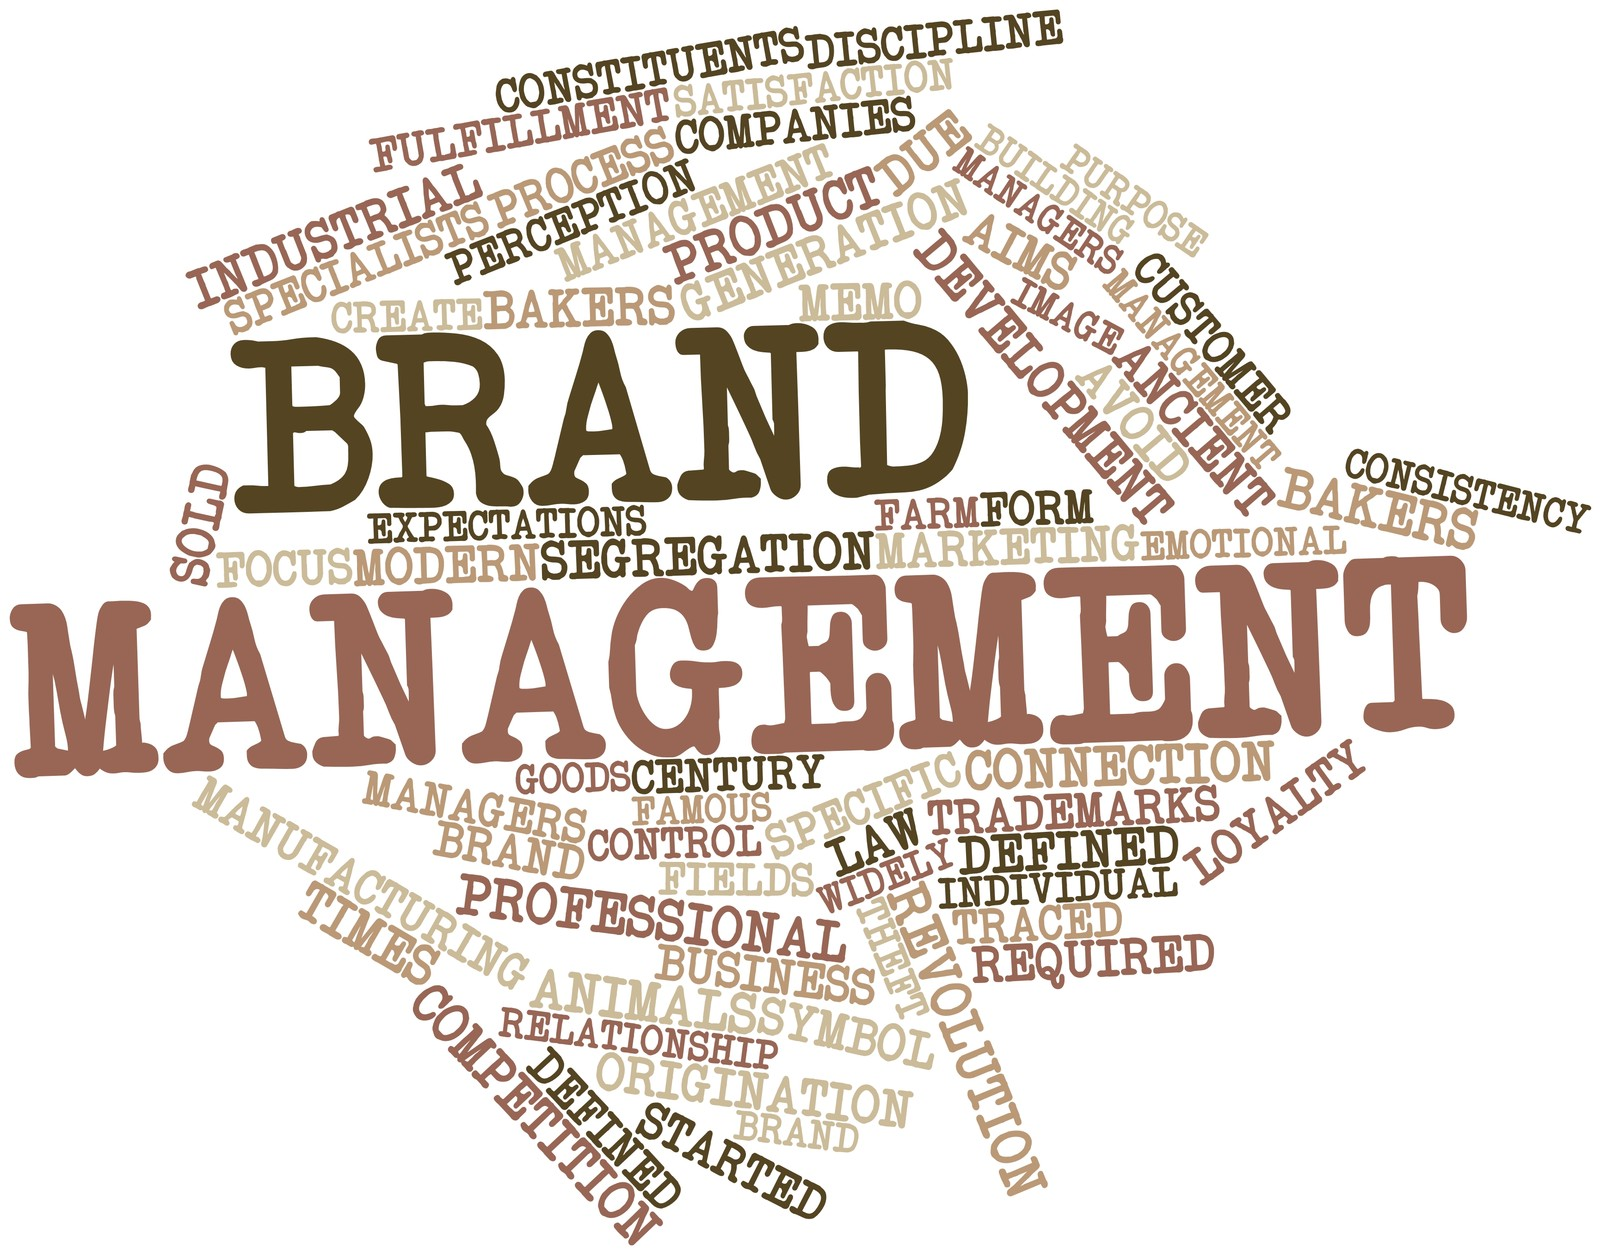 managing the brand Brand reputation management is critical to growing a business a positive brand reputation builds loyalty and increases customer confidence in your brand and product, ultimately driving sales and bottom-line growth.